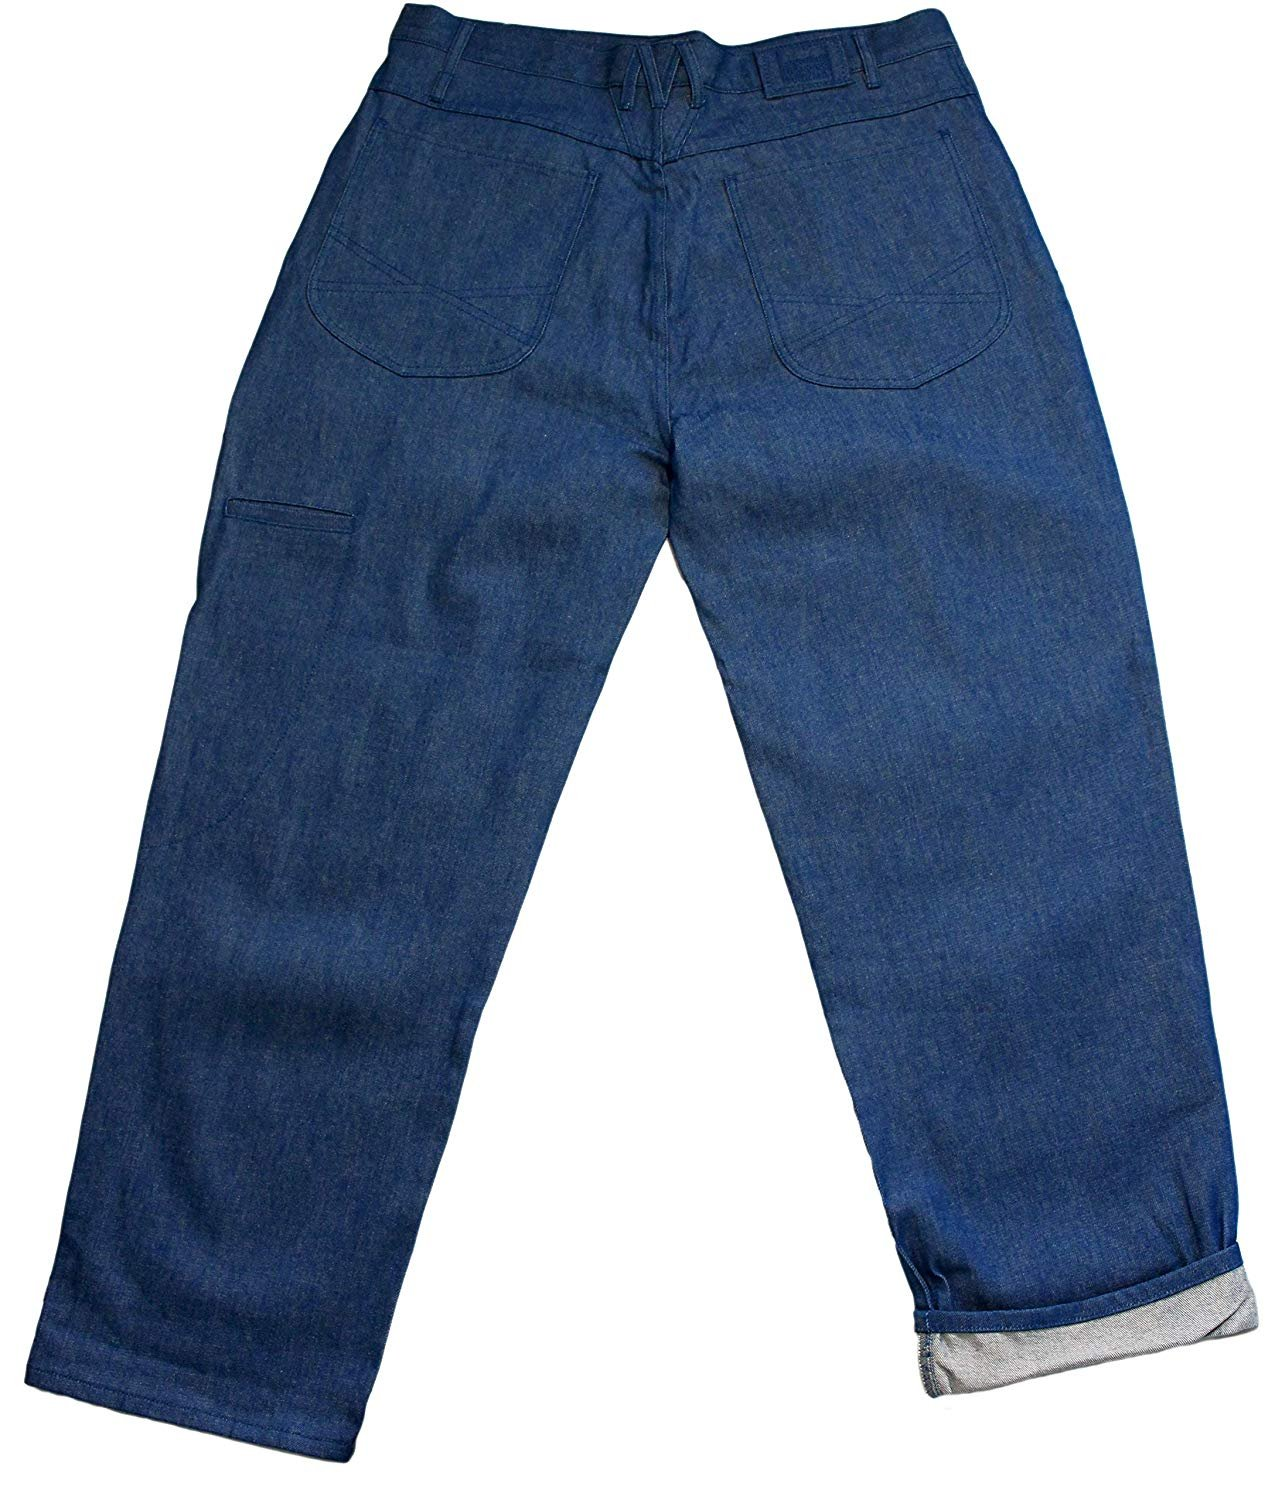 Colored Denim Jean - Classic Blue